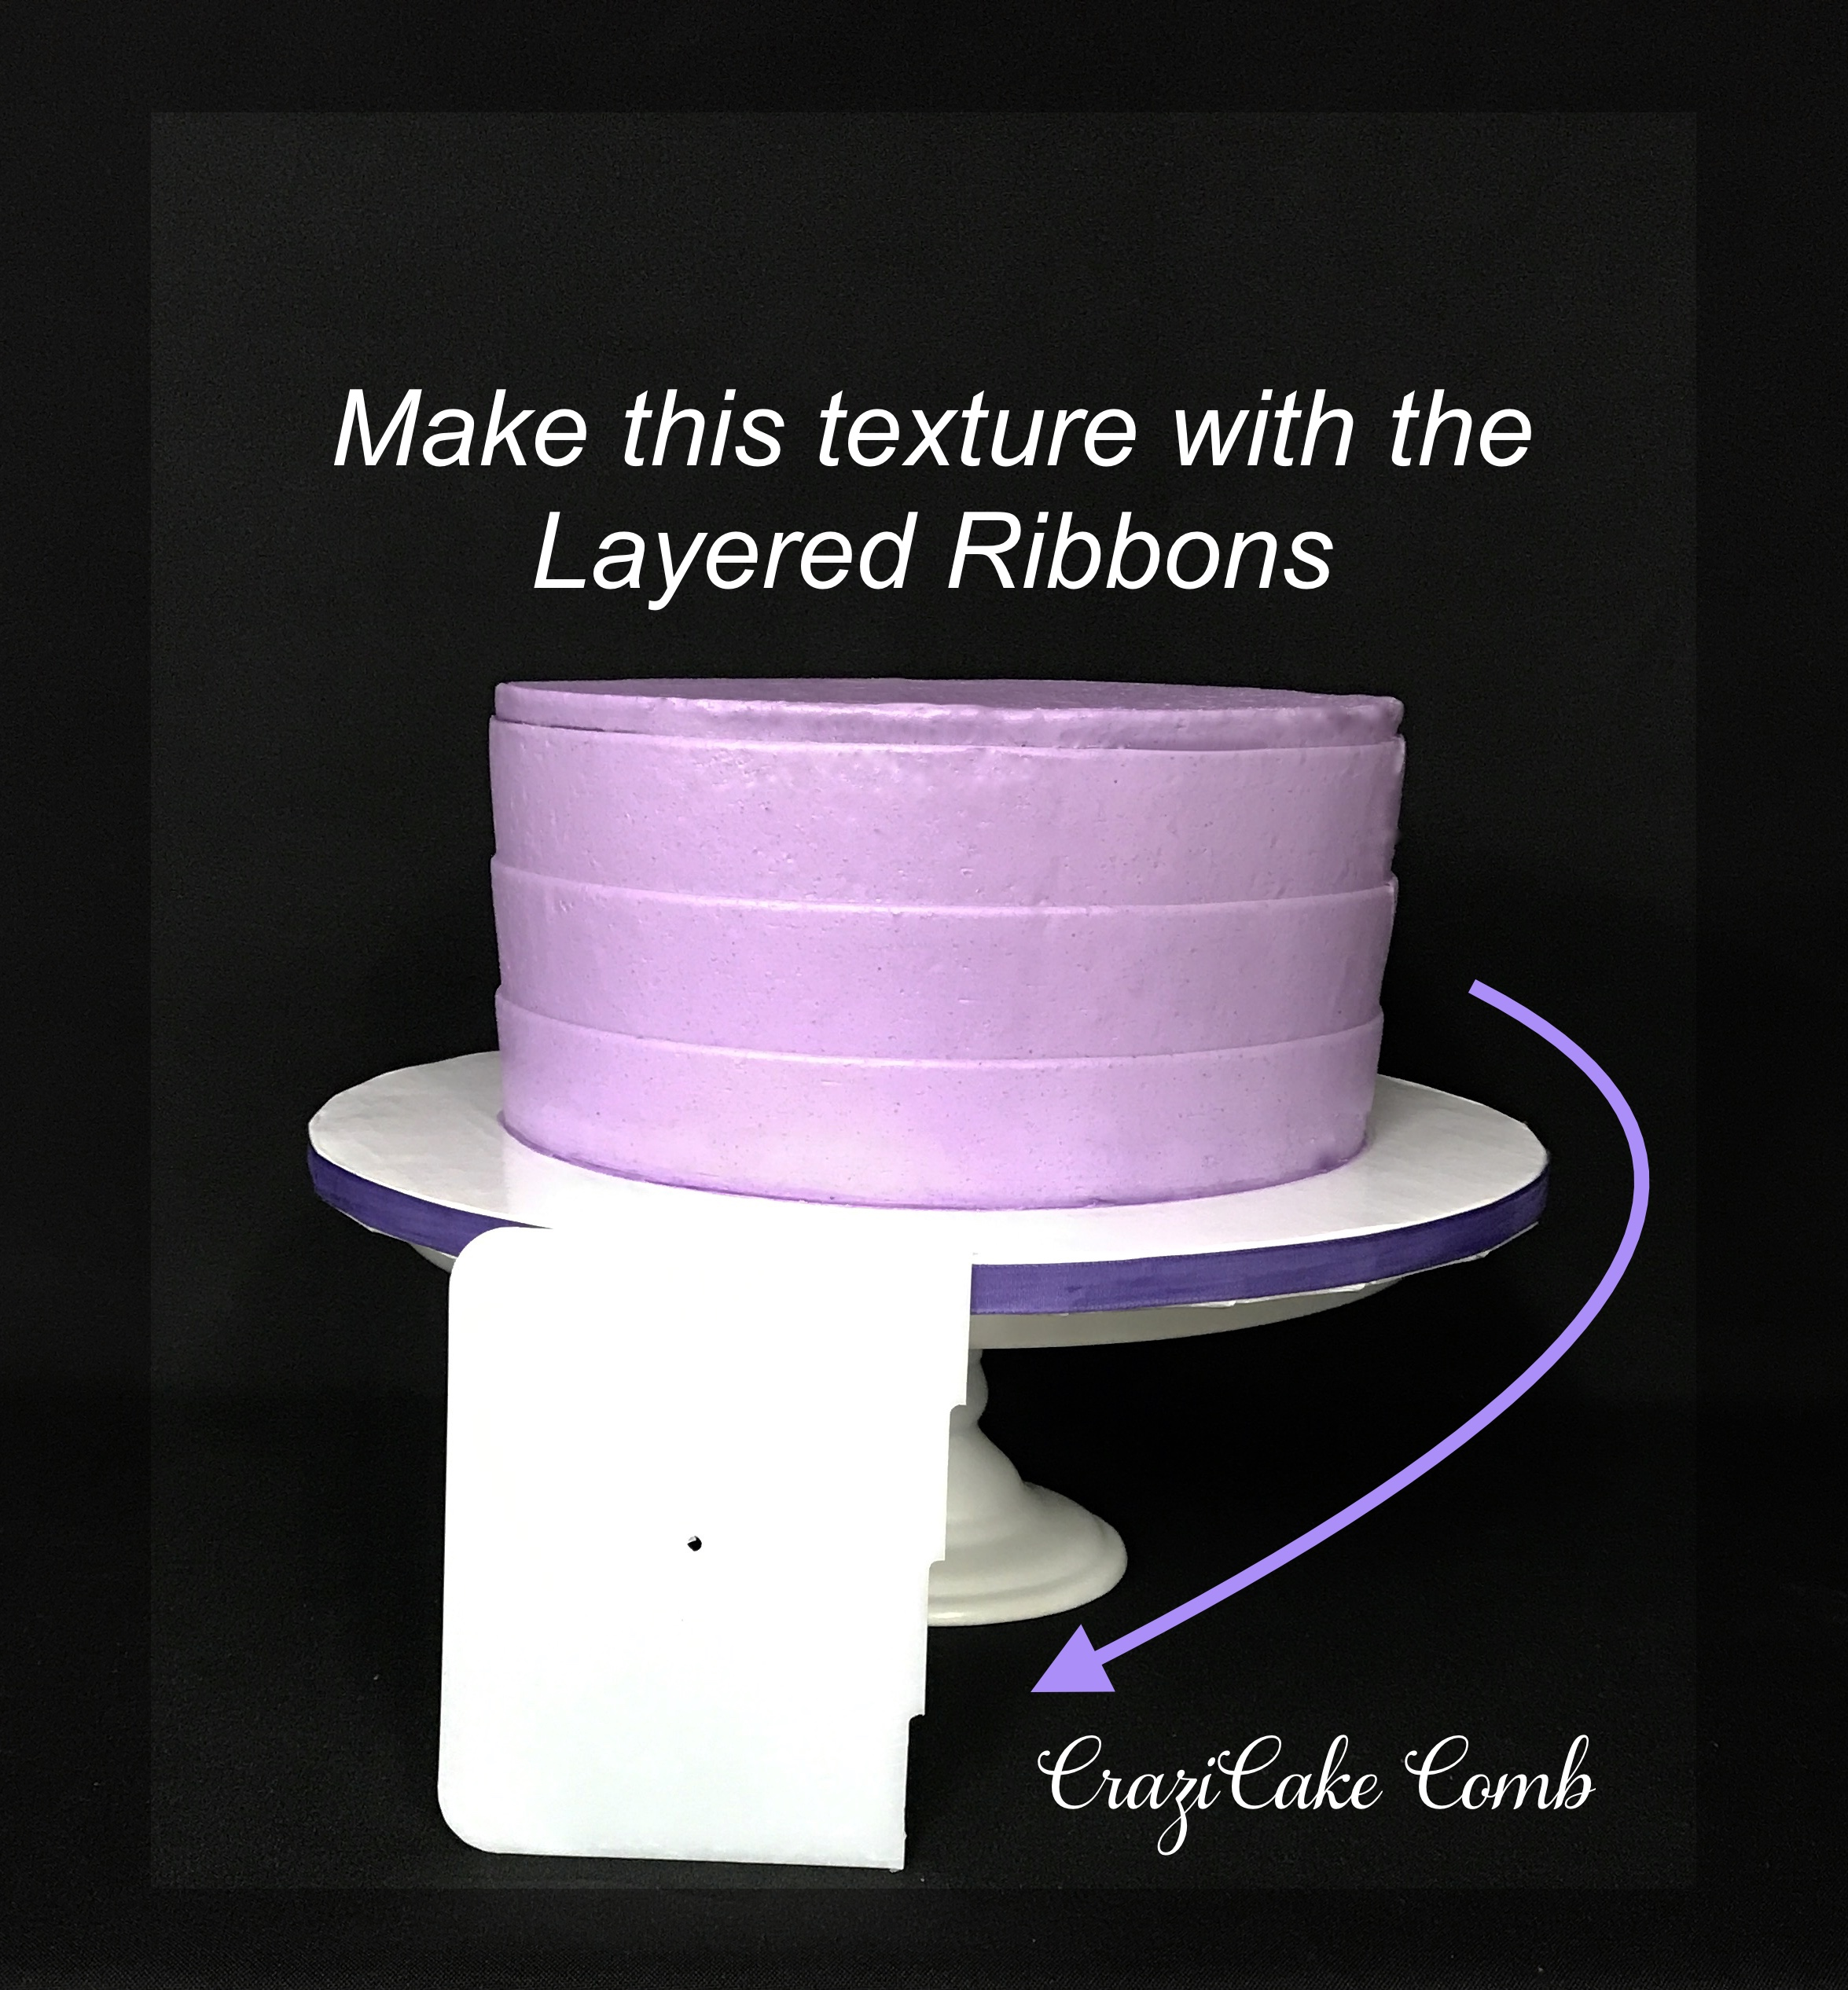 Layered Ribbons CraziCakes Comb